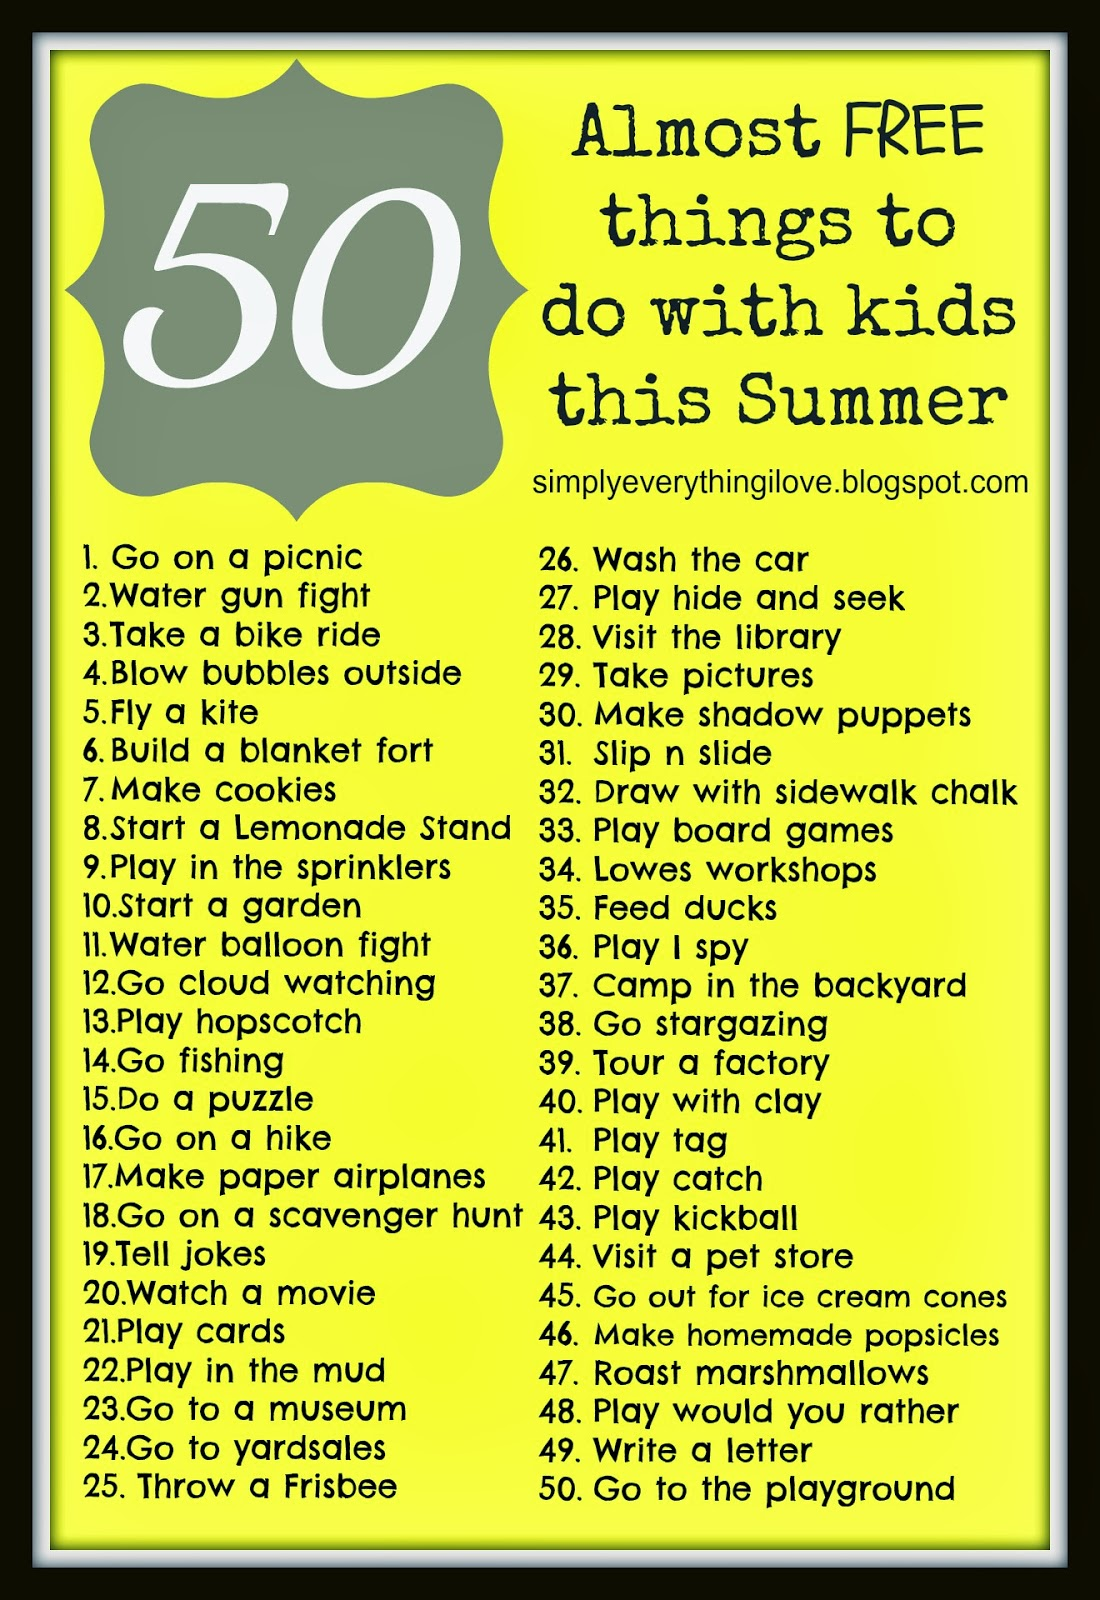 Simply Everthing I Love...: 50 Almost FREE things to do ...